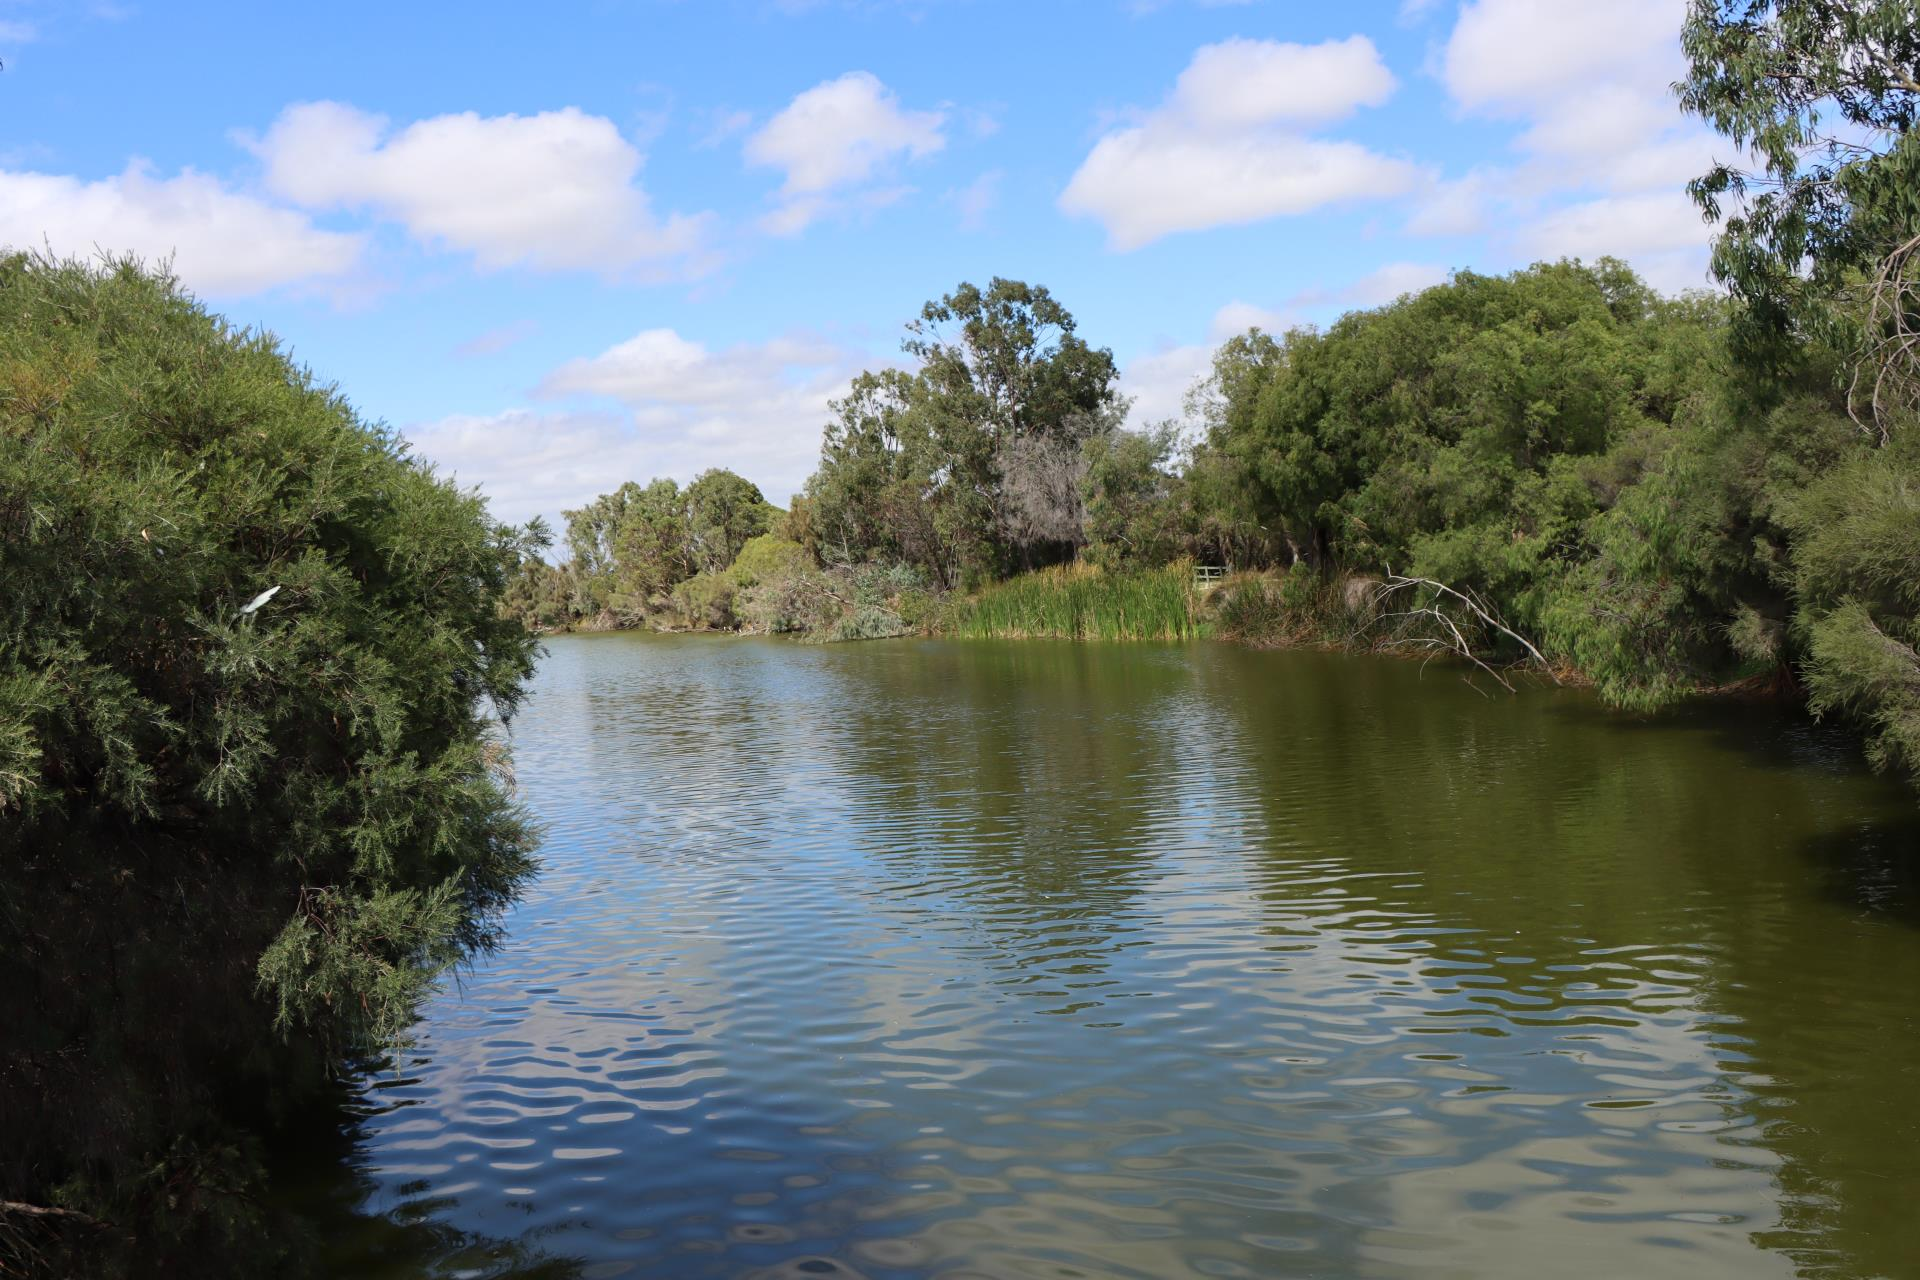 Update on the Lower Vasse River